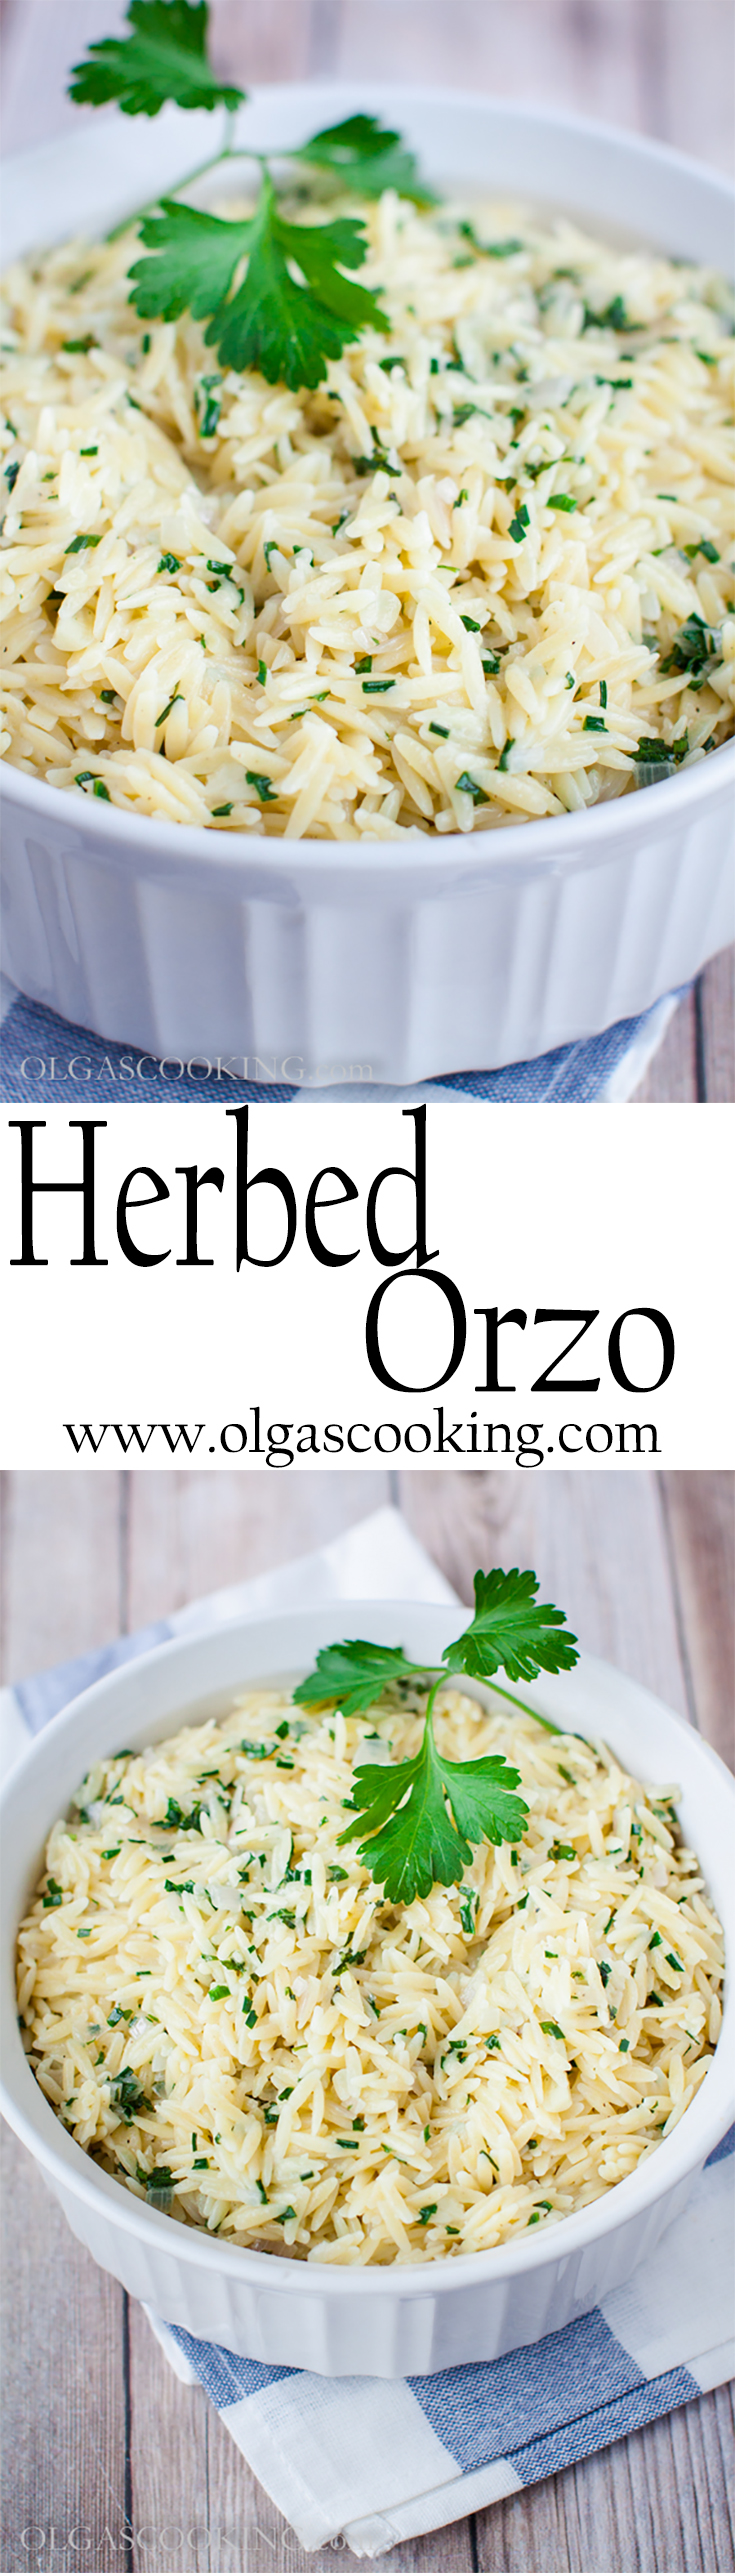 Herbed Orzo